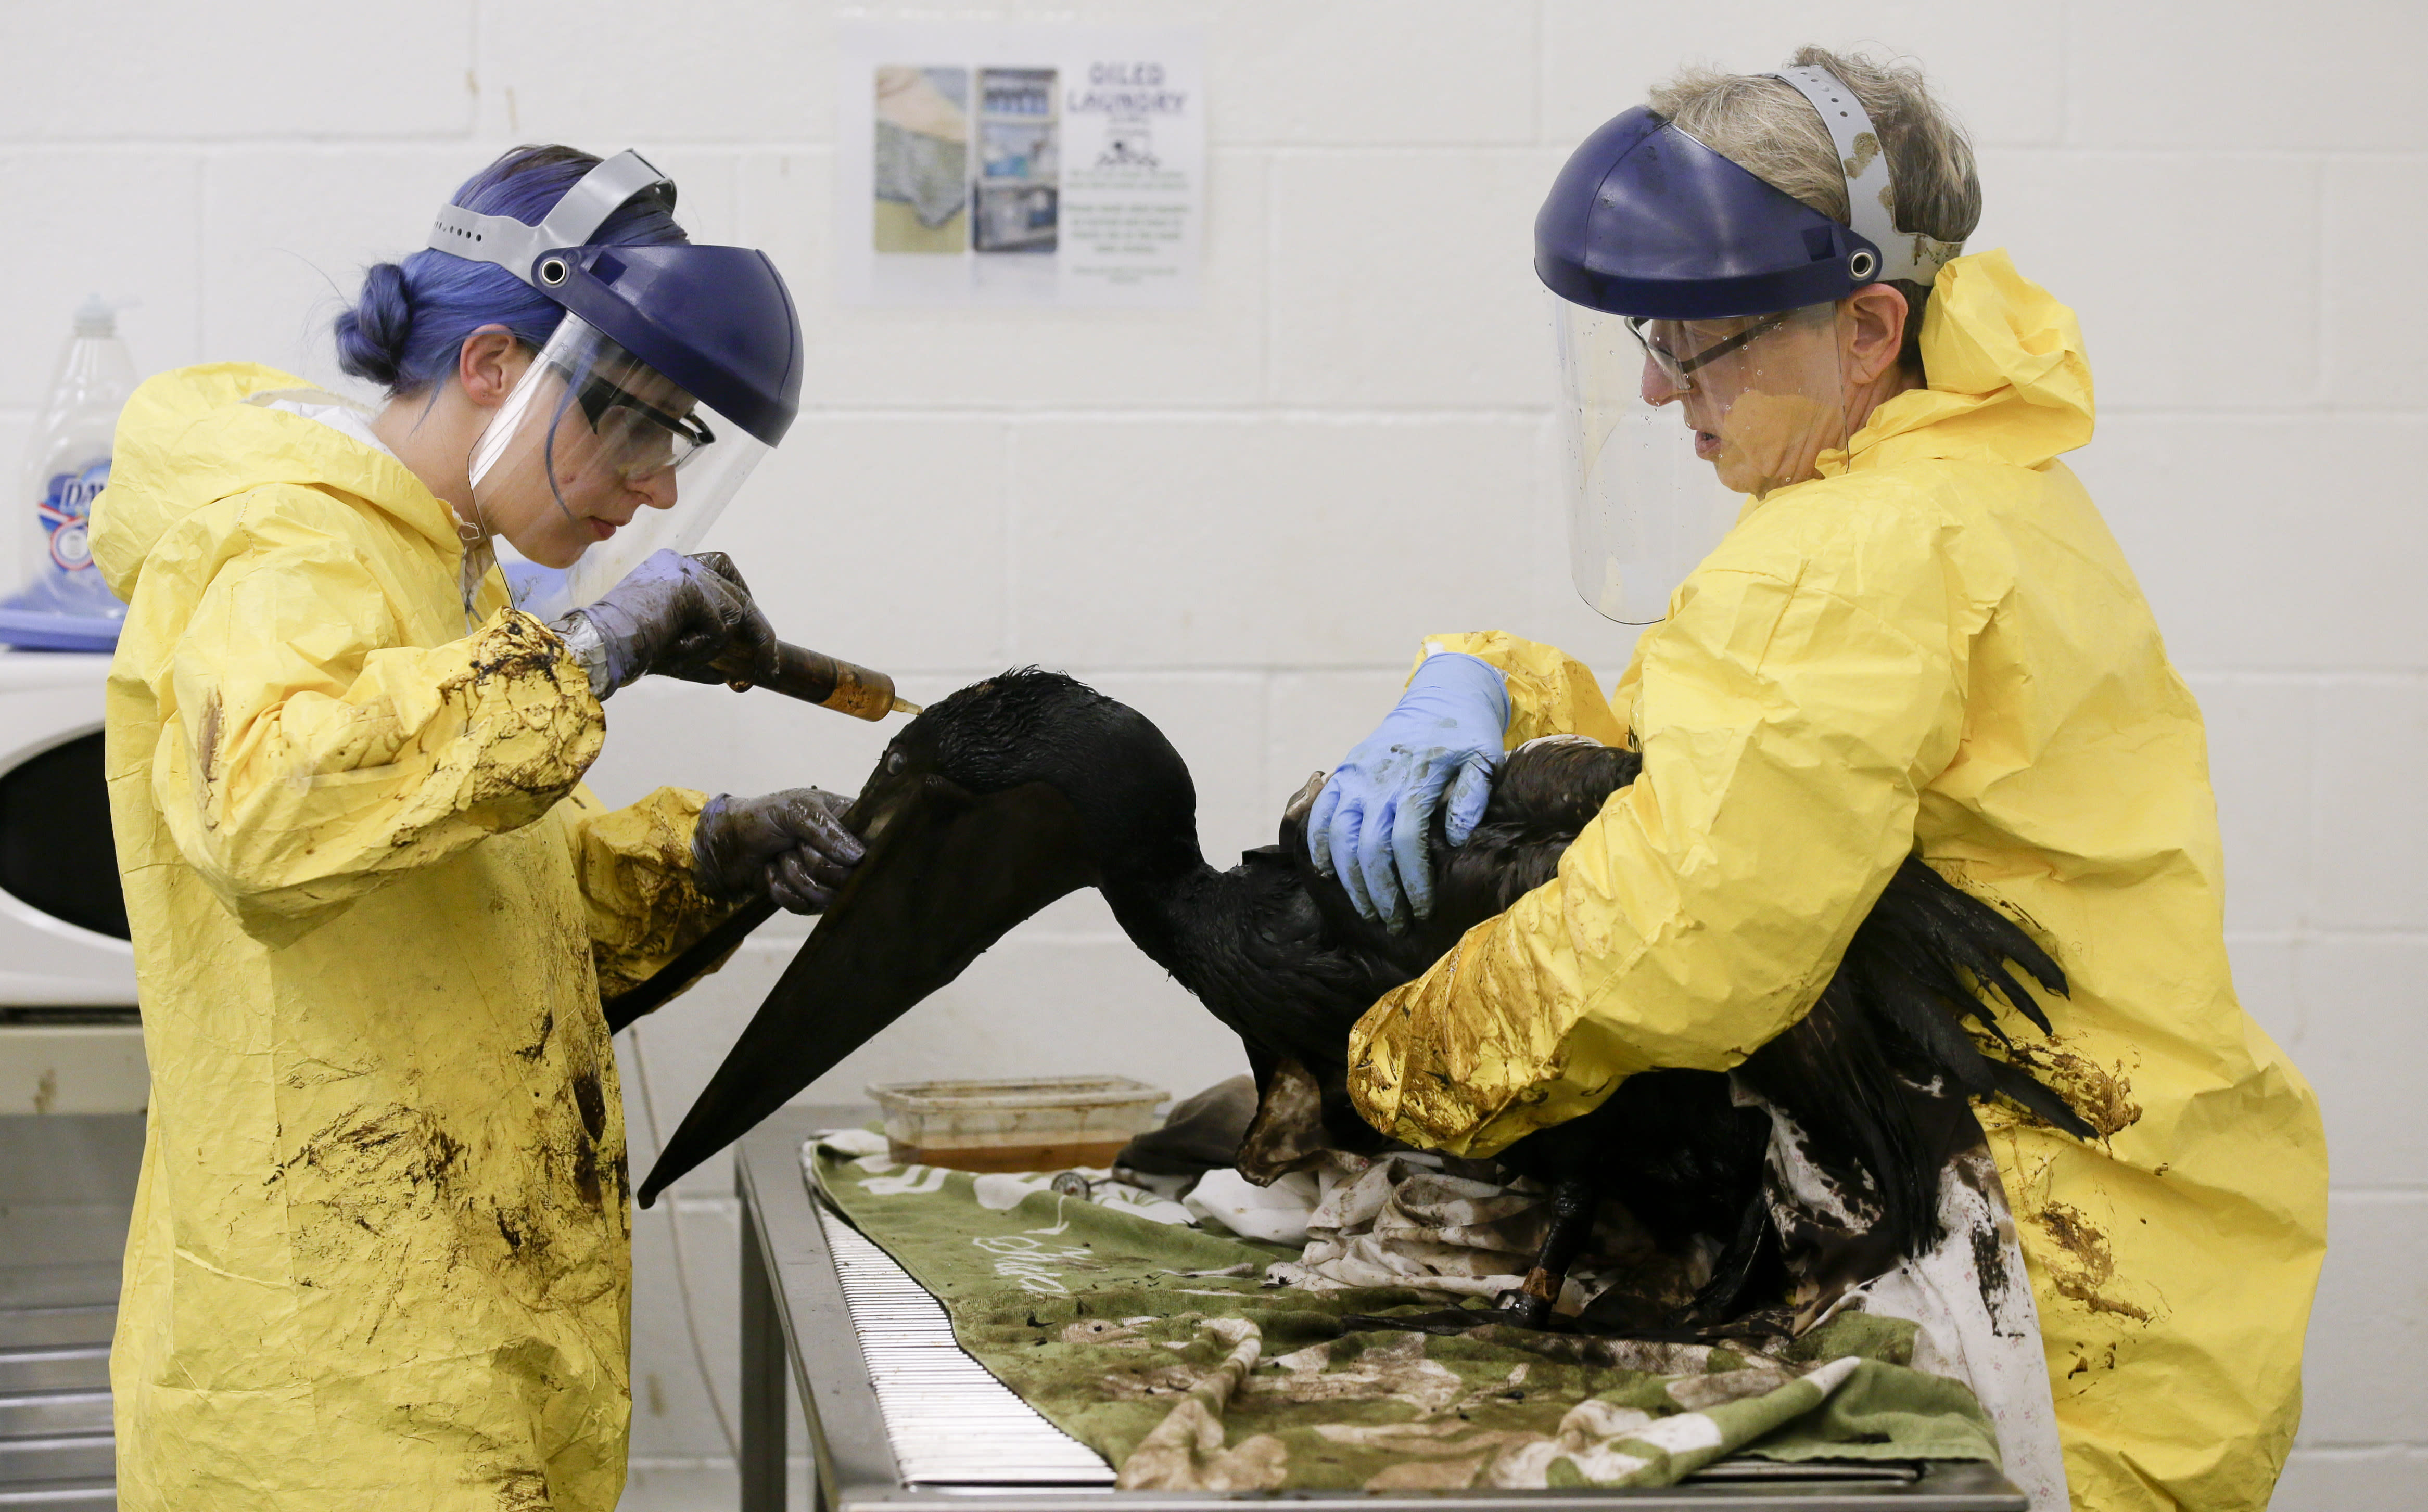 Choppy slick is harder to clean up; more oily animals found